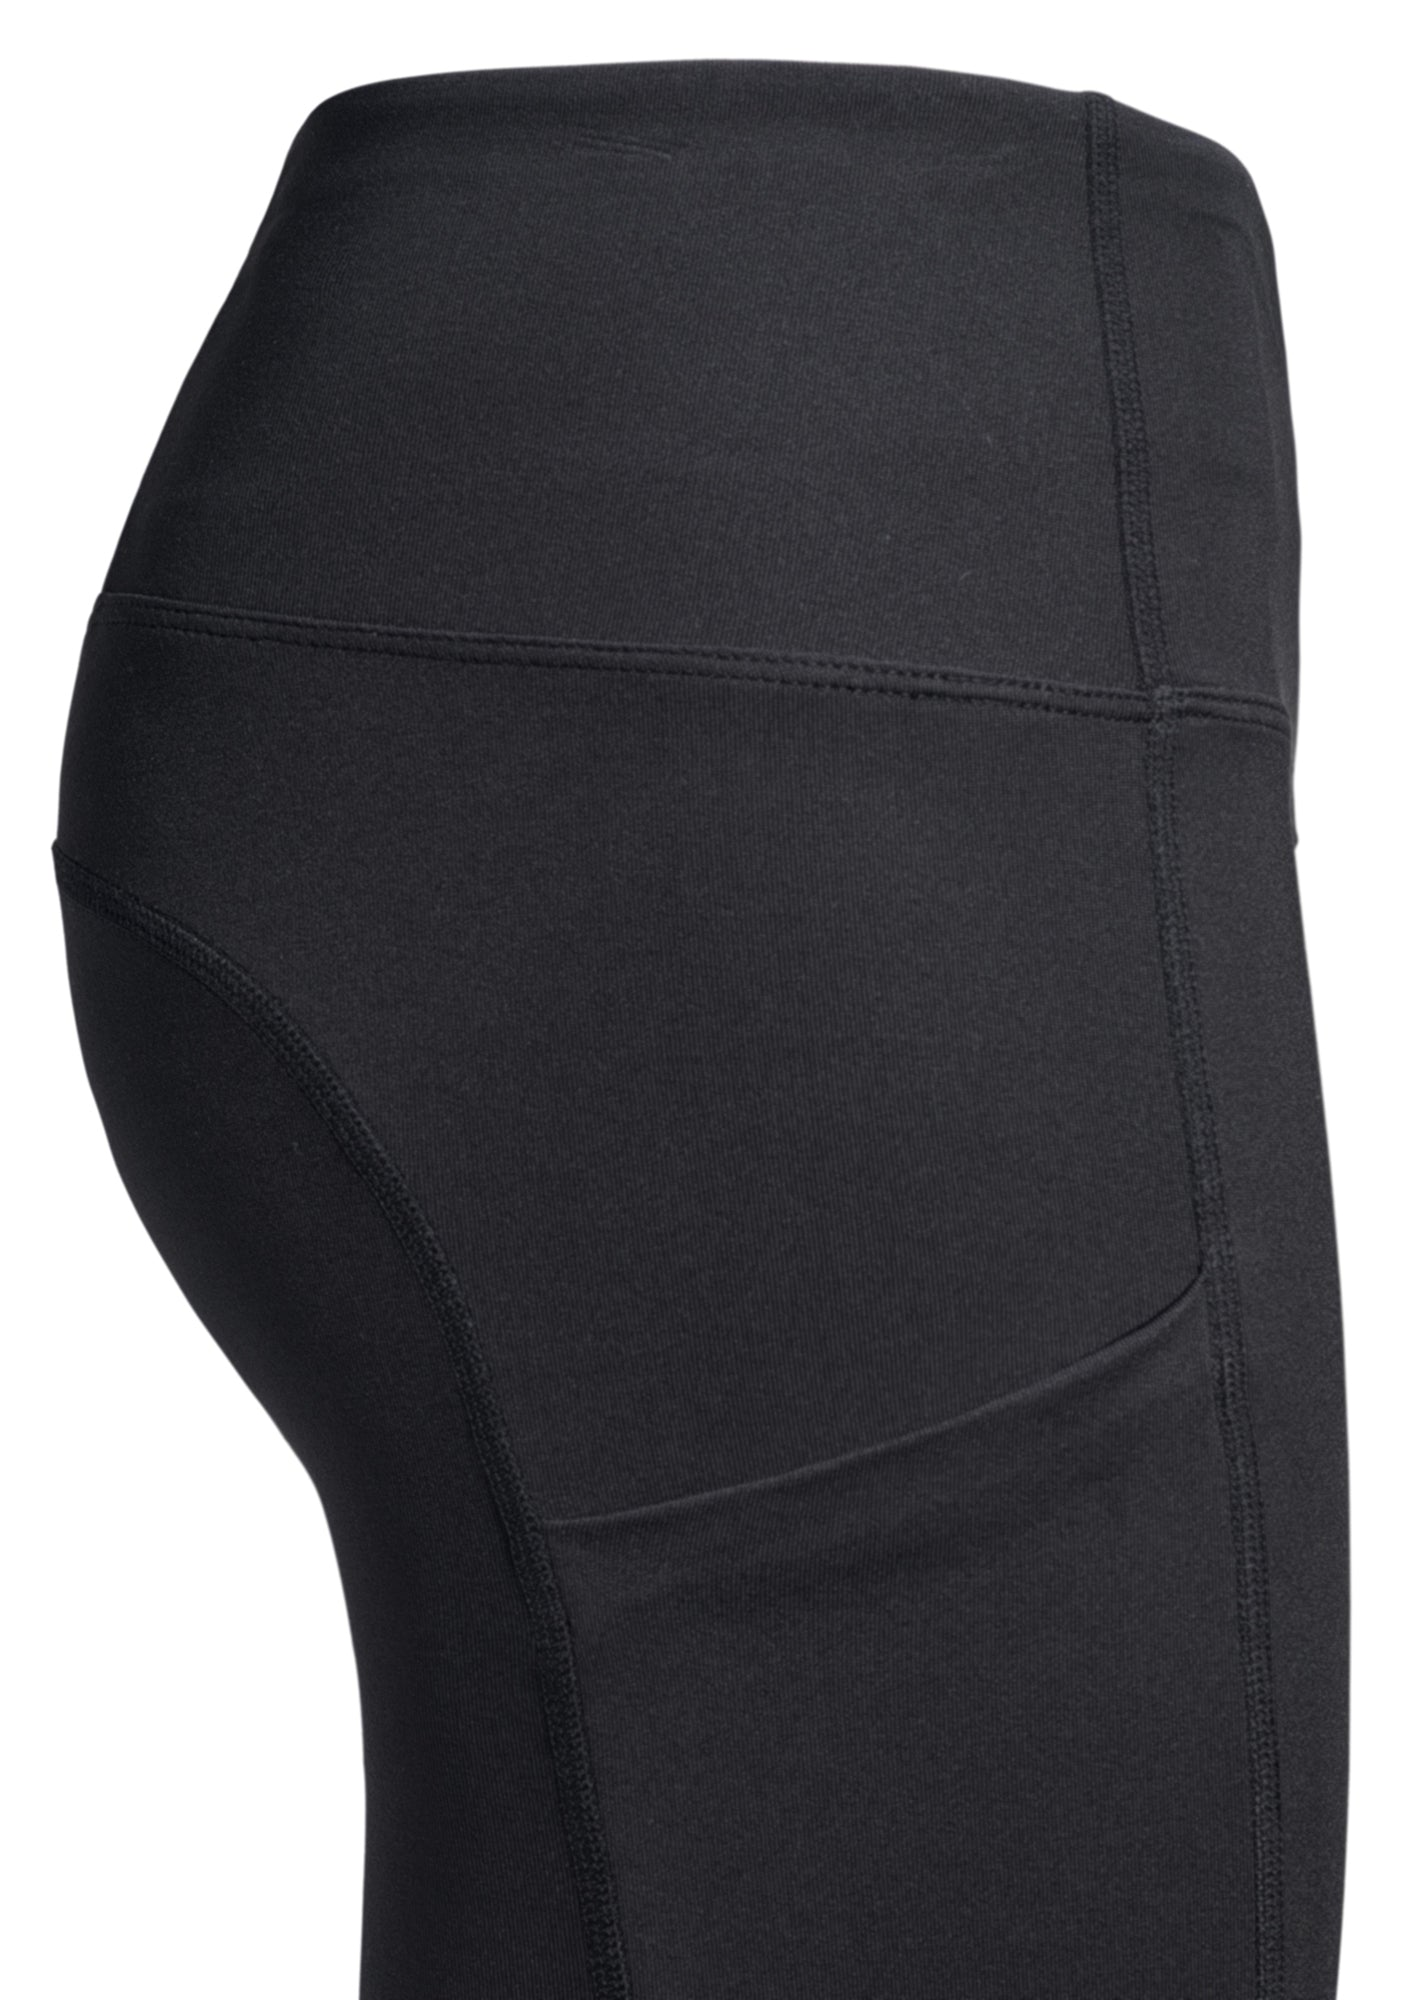 pocket legging woman's christian activewear